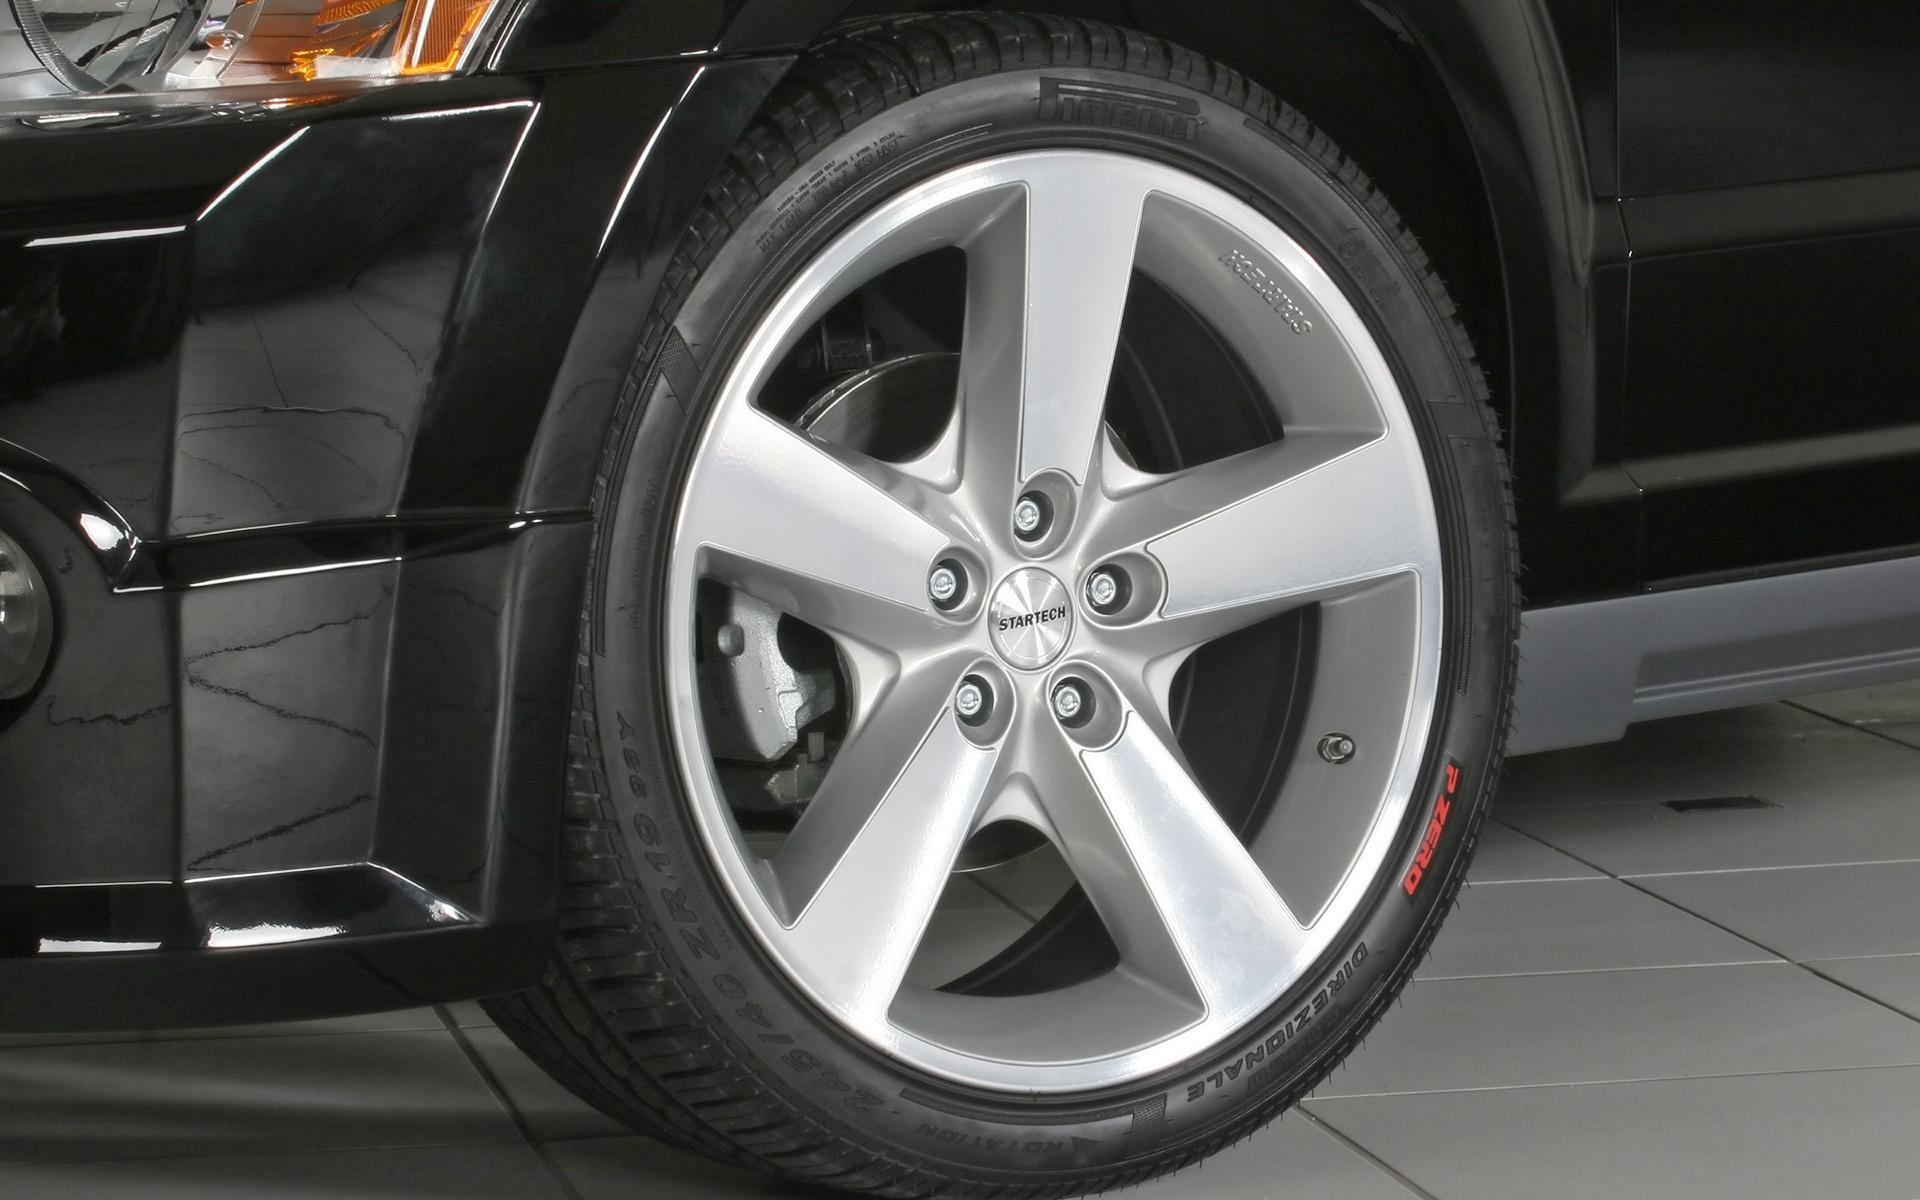 2007 Startech Dodge Caliber Wheel 1920x1200